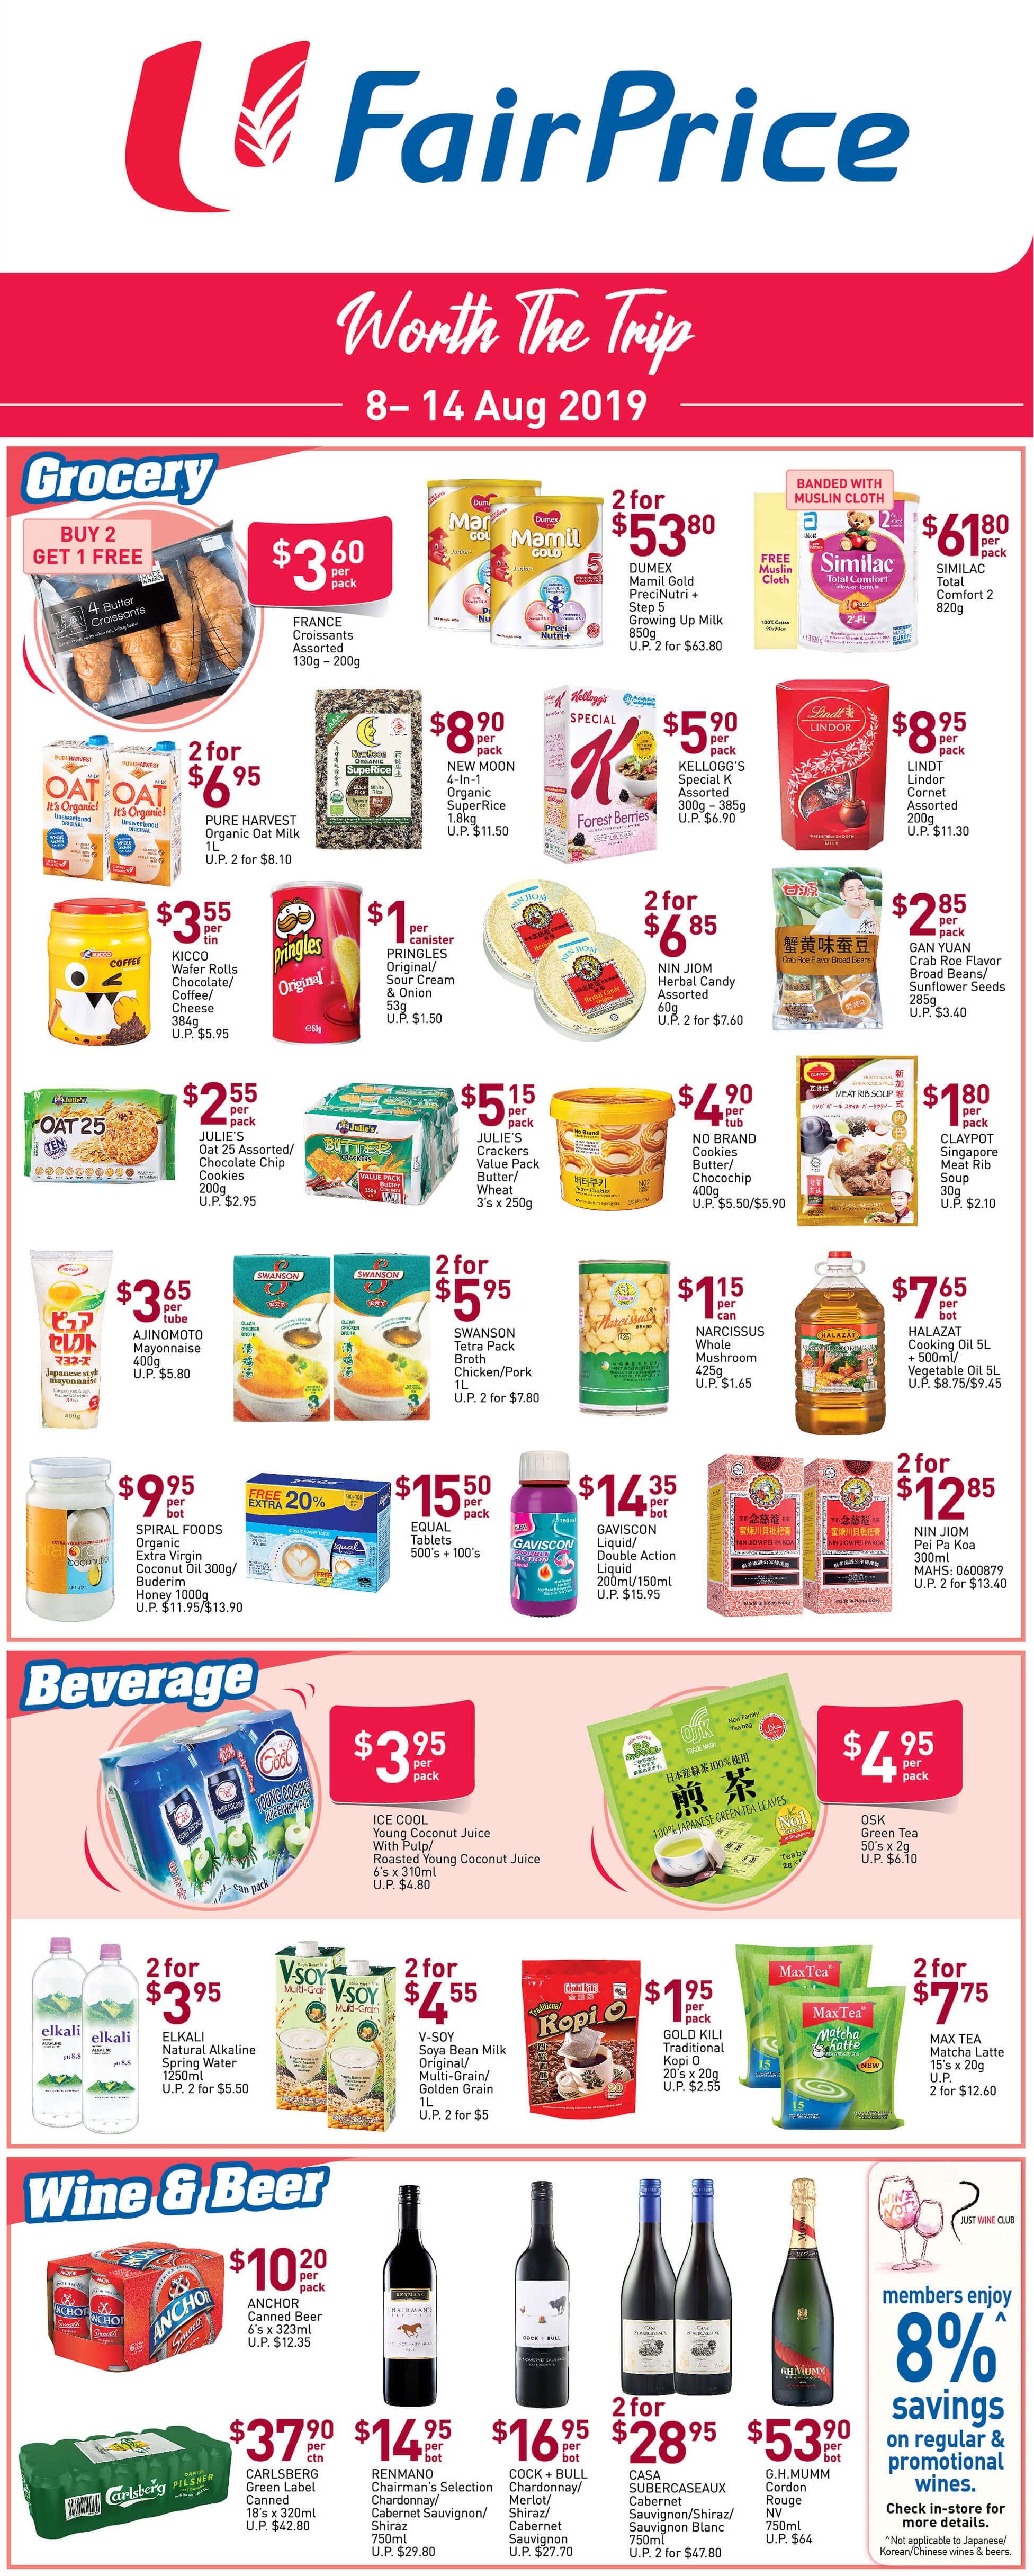 NTUC FairPrice Singapore Your Weekly Saver Promotion 8-14 Aug 2019   Why Not Deals 2 & Promotions